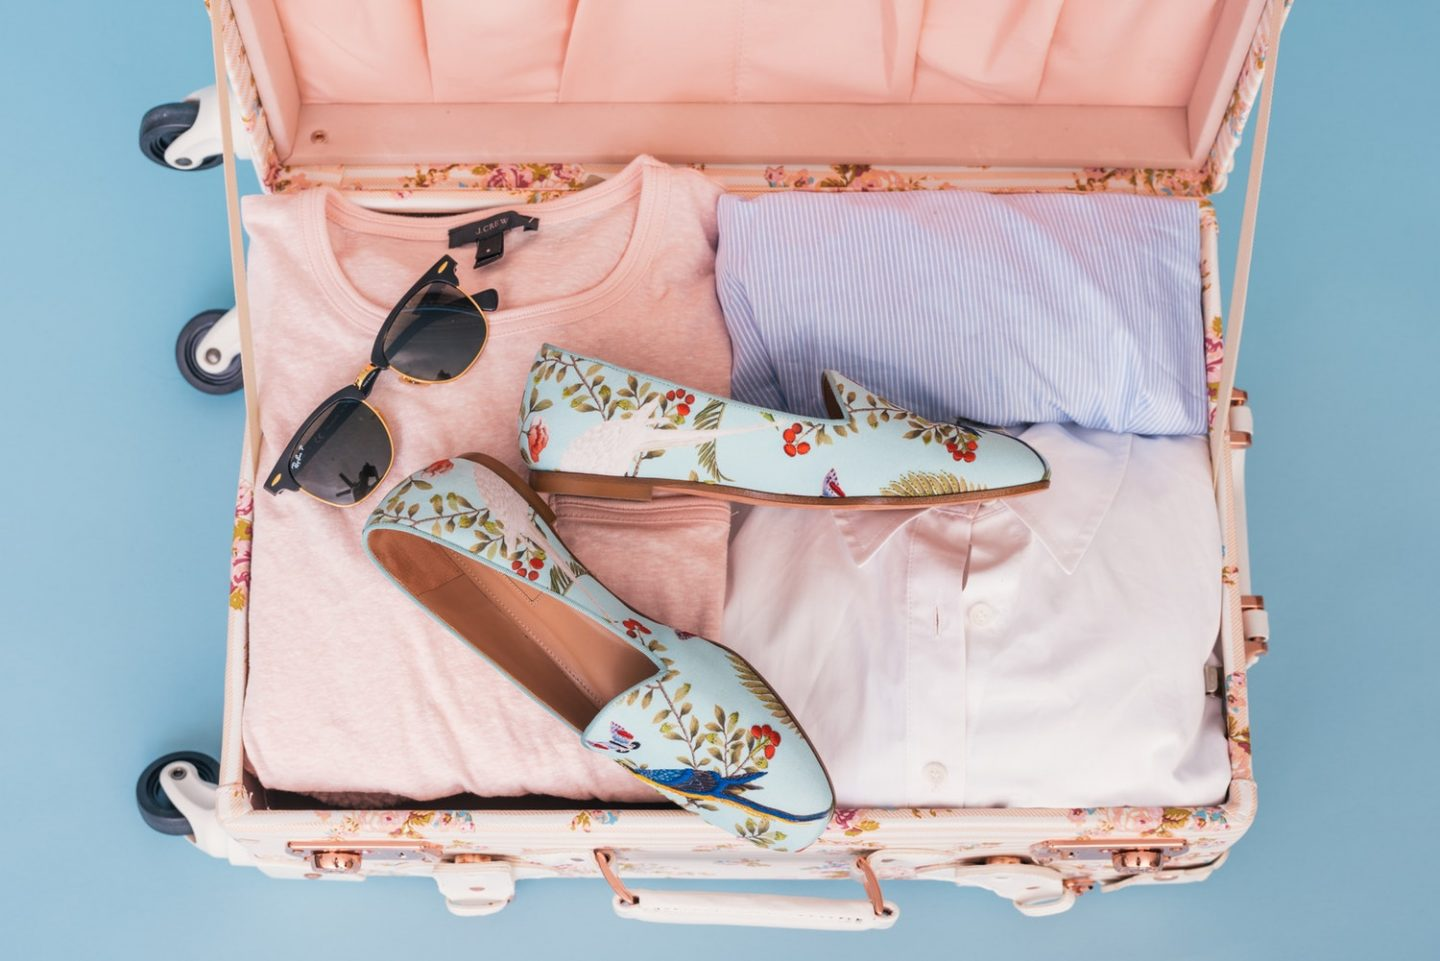 Four Things You Need to Take with You When You Travel